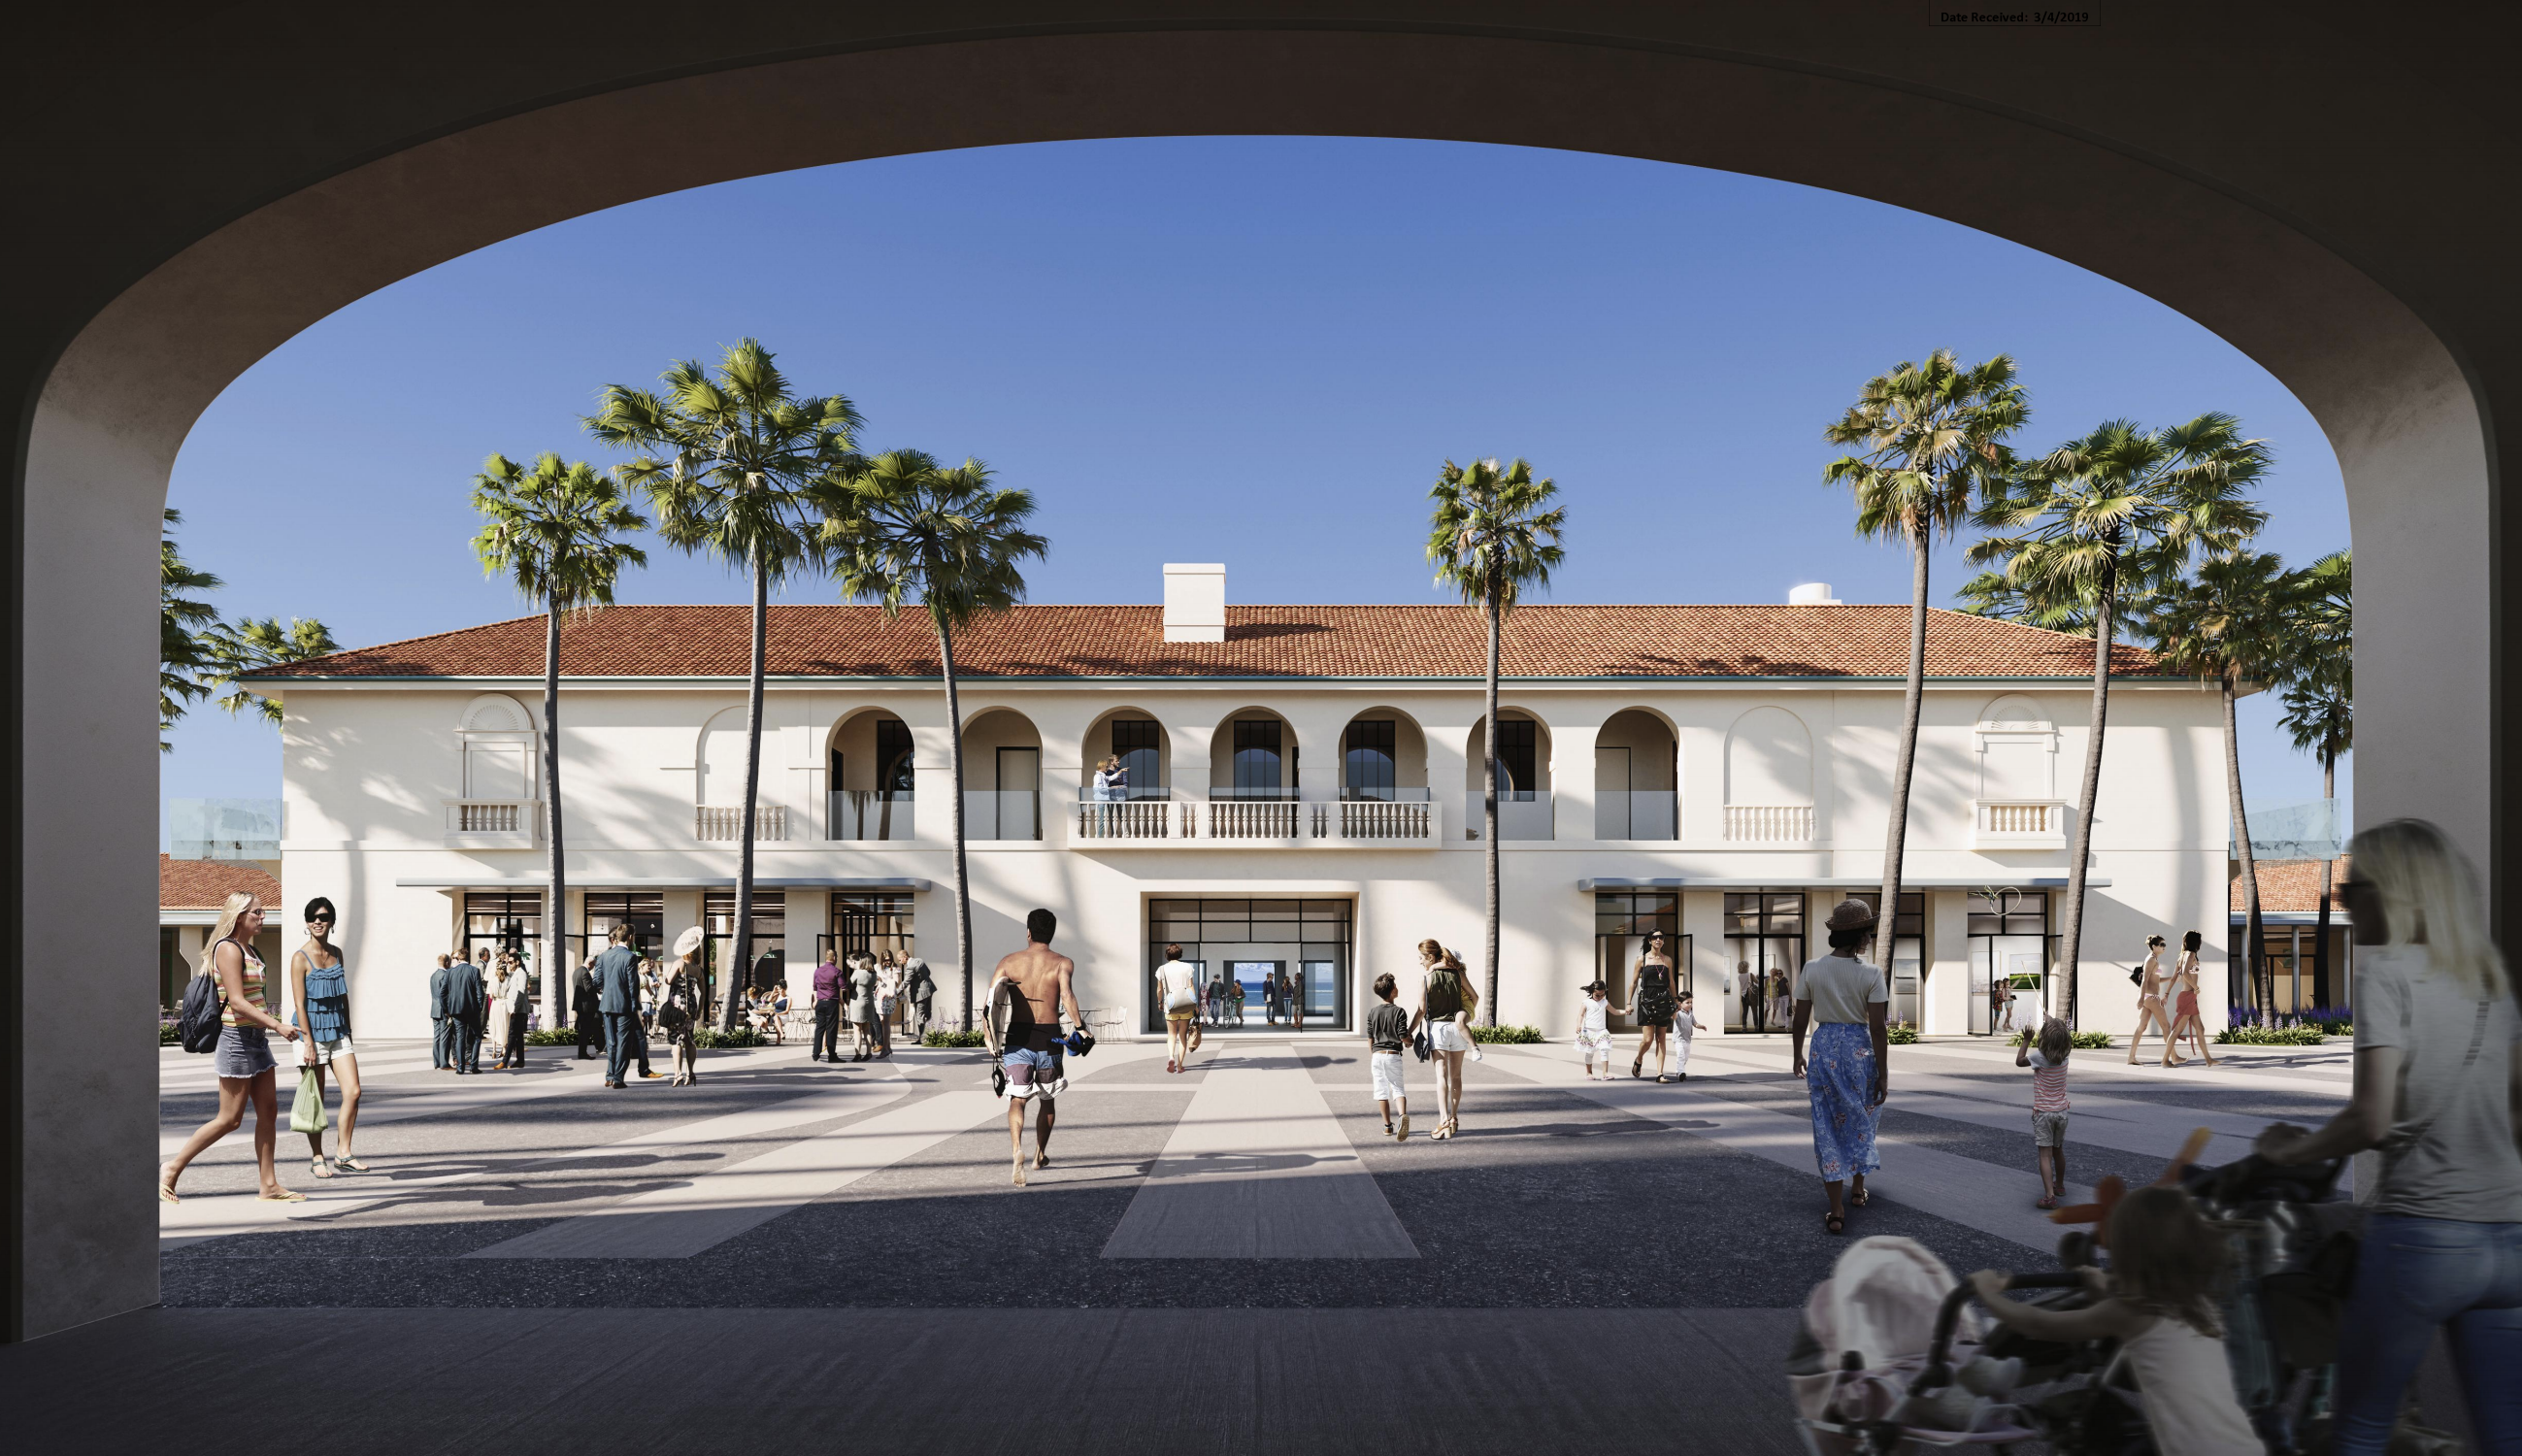 Council's plans for a $26.7m restoration. Plans for the Pavilion's refurbishment have been controversial. The former Liberal-led council's $38m plan saw fierce community opposition.